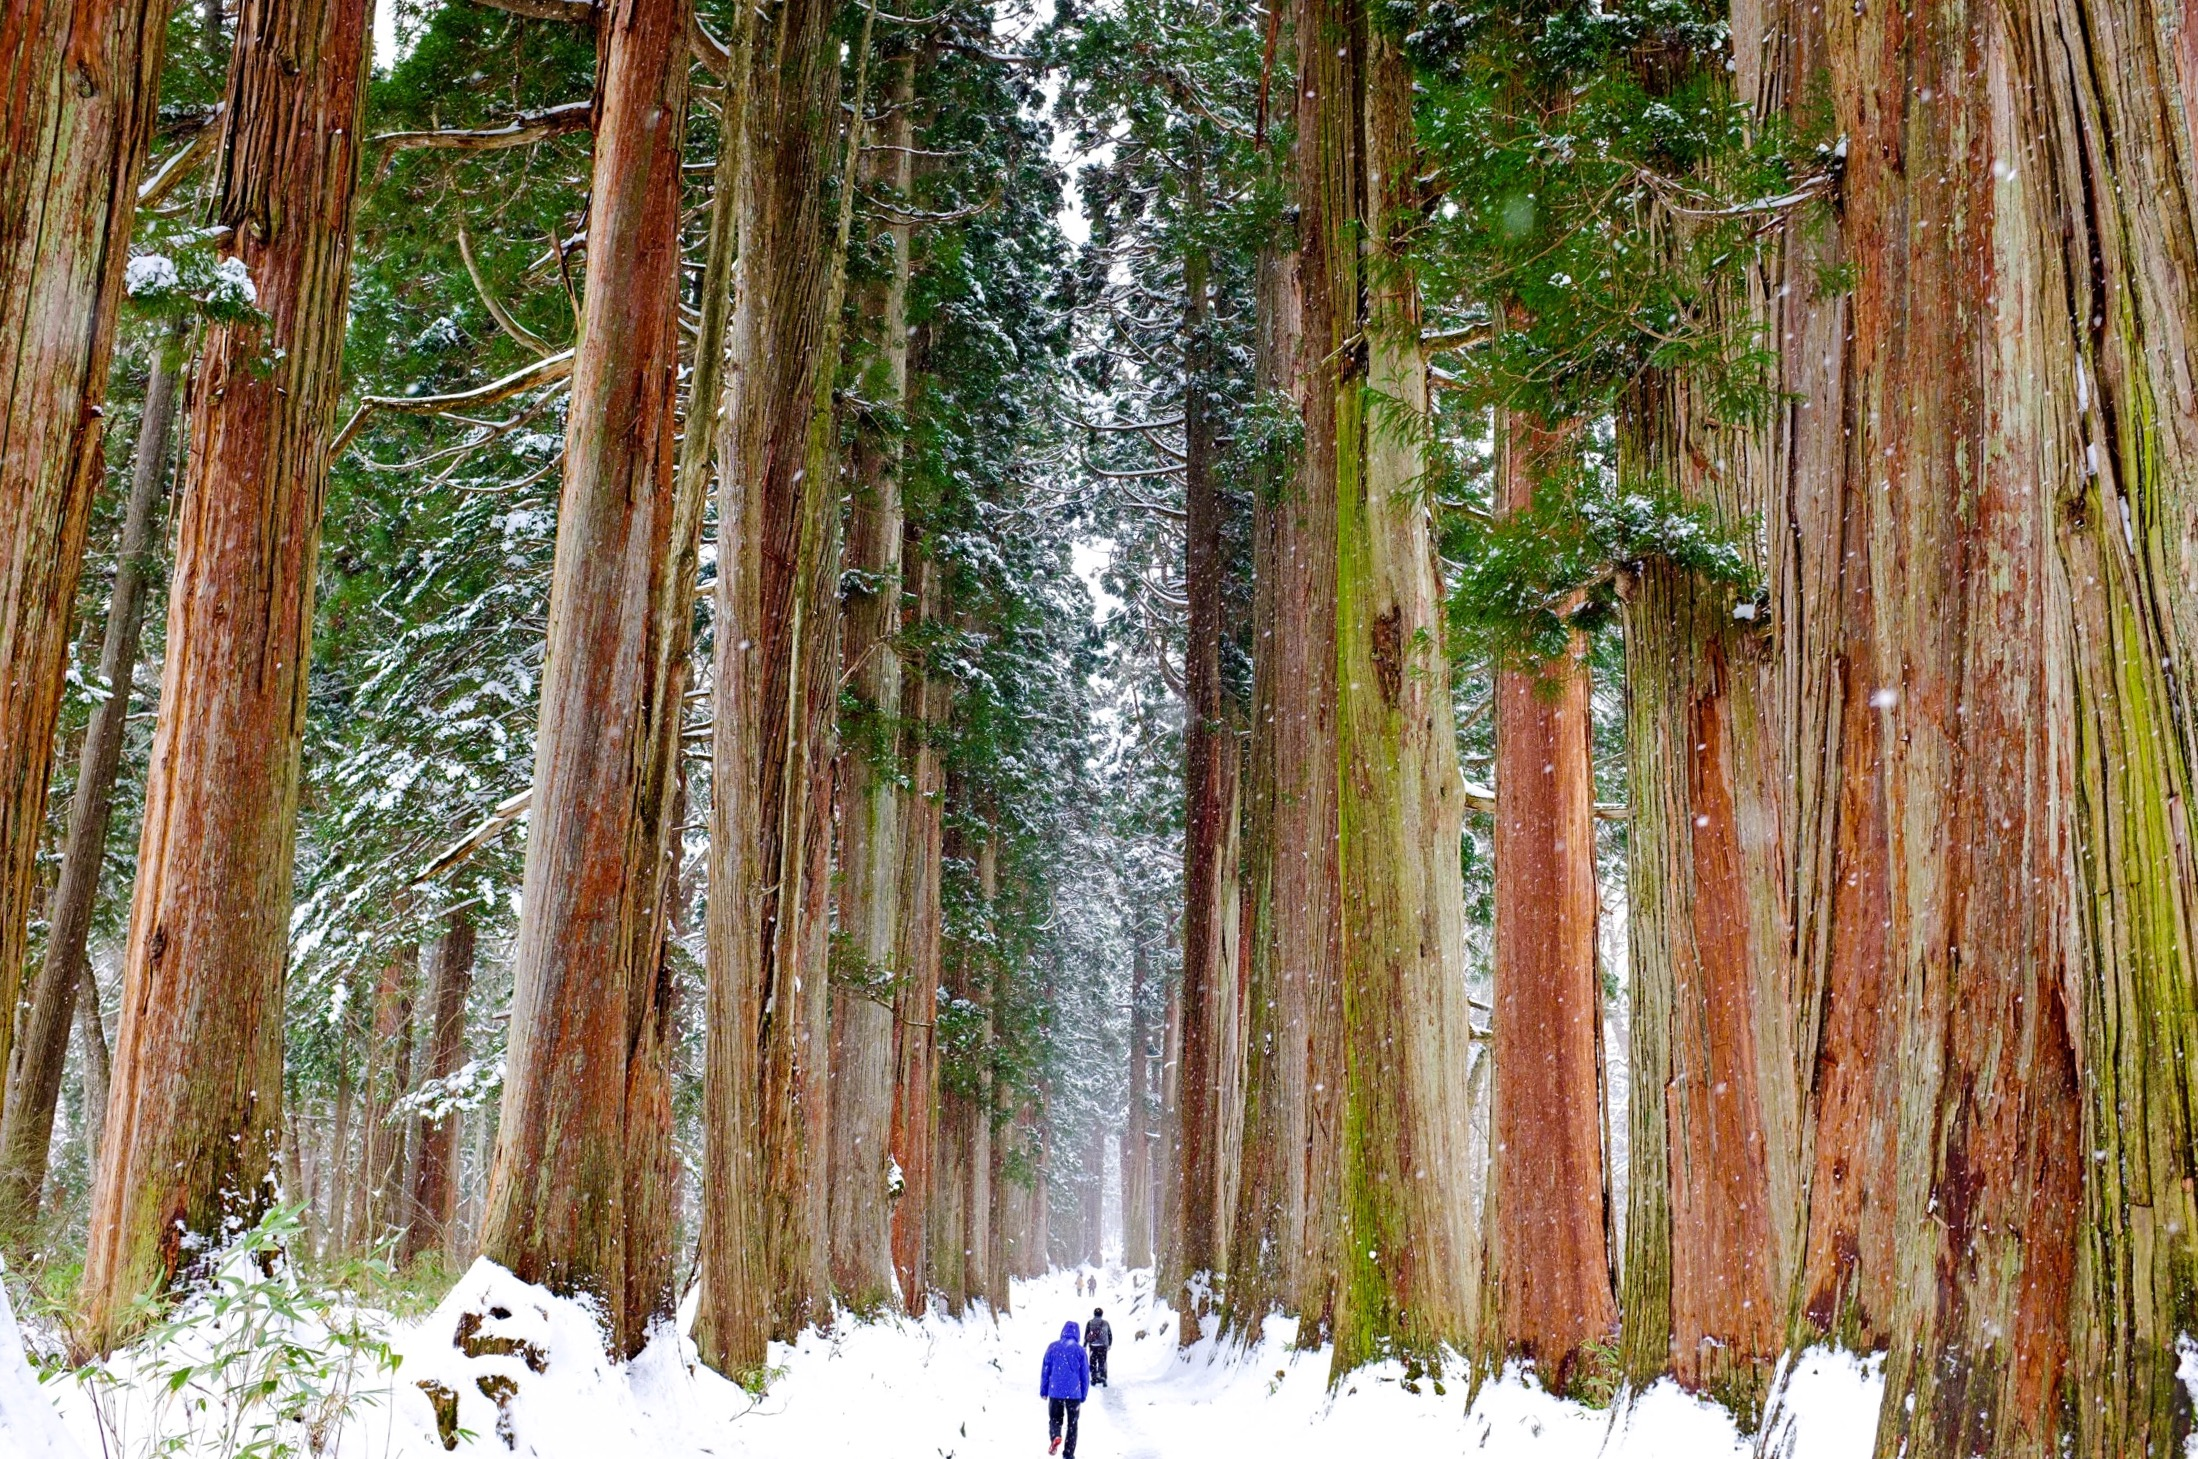 The huge Cedar trees not far from Nozawa make you appreciate the power of Nature